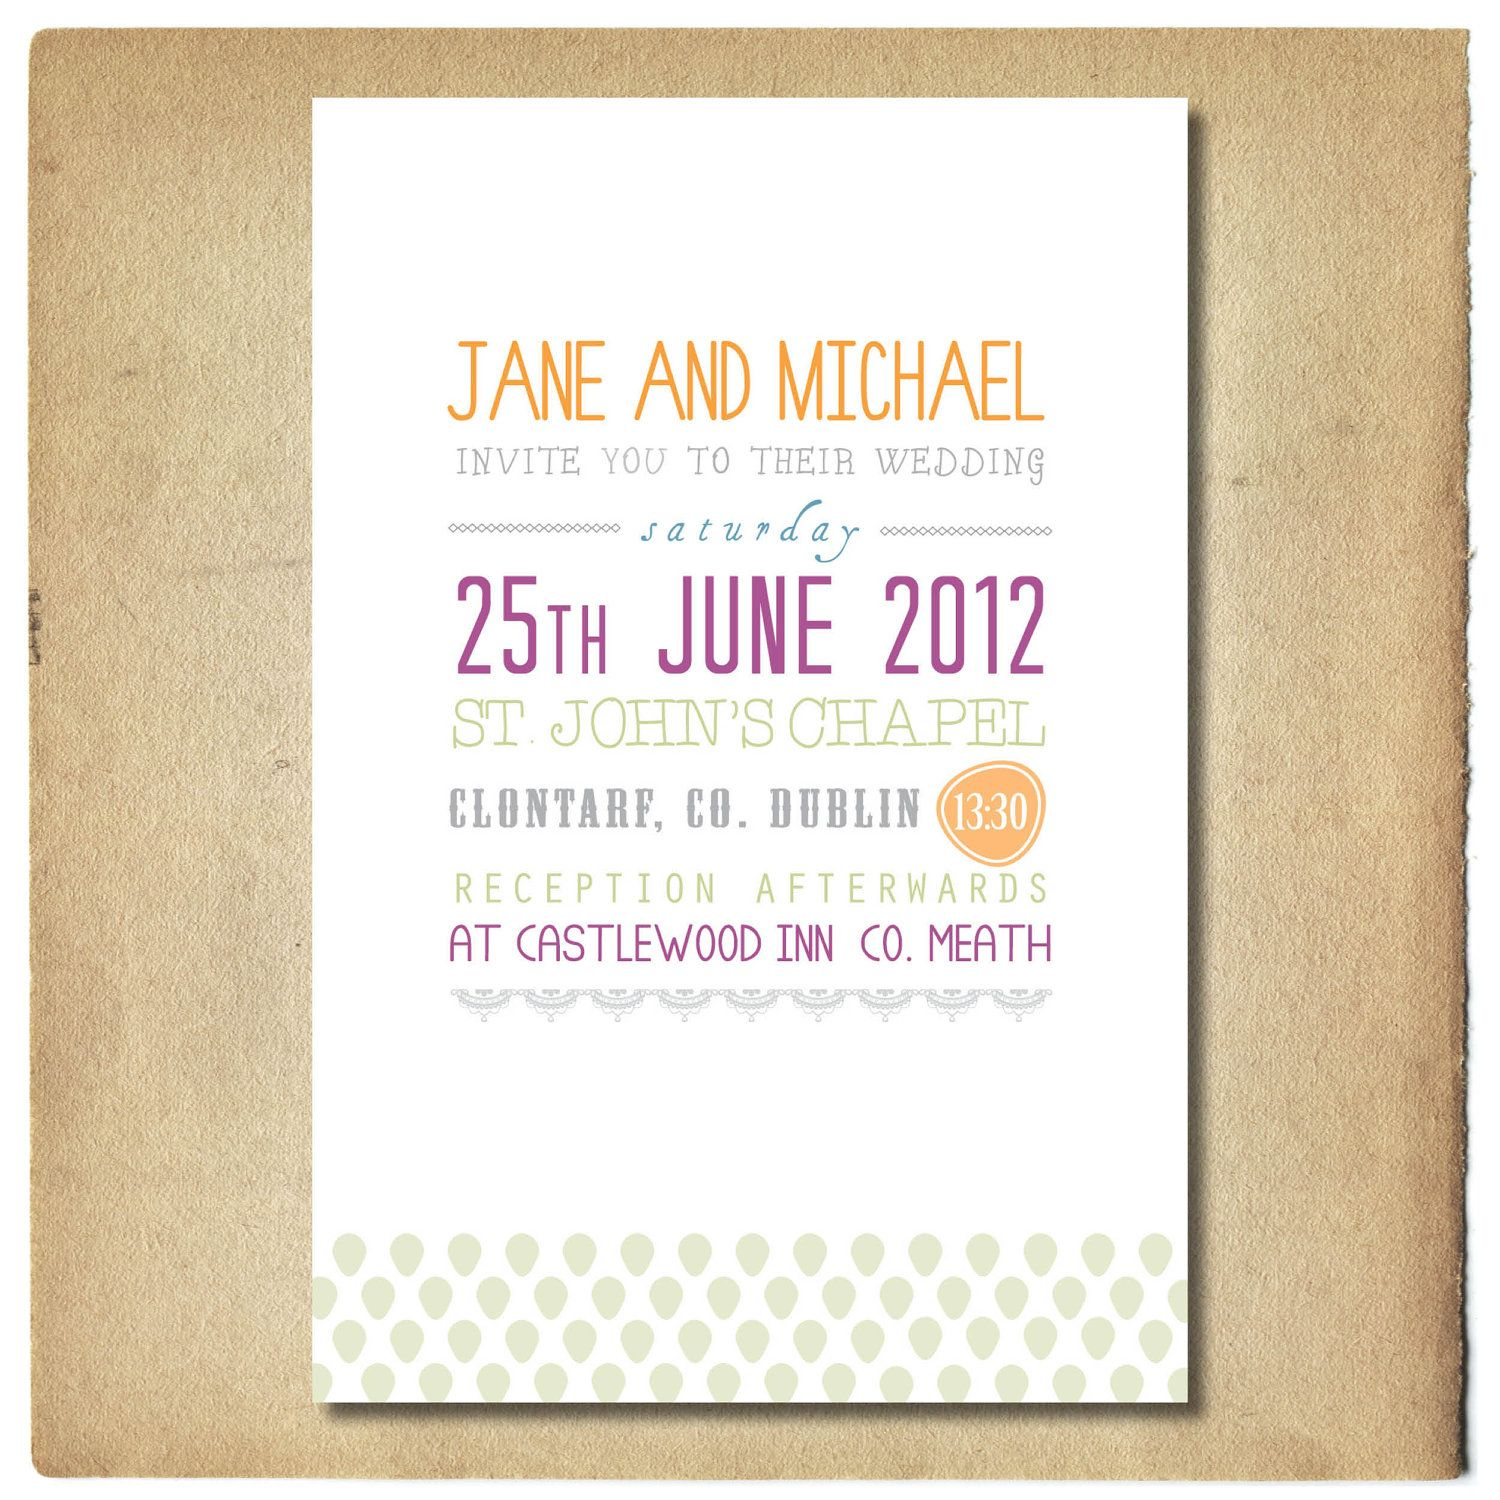 Wedding Invitation With Text Design // Green And Purple